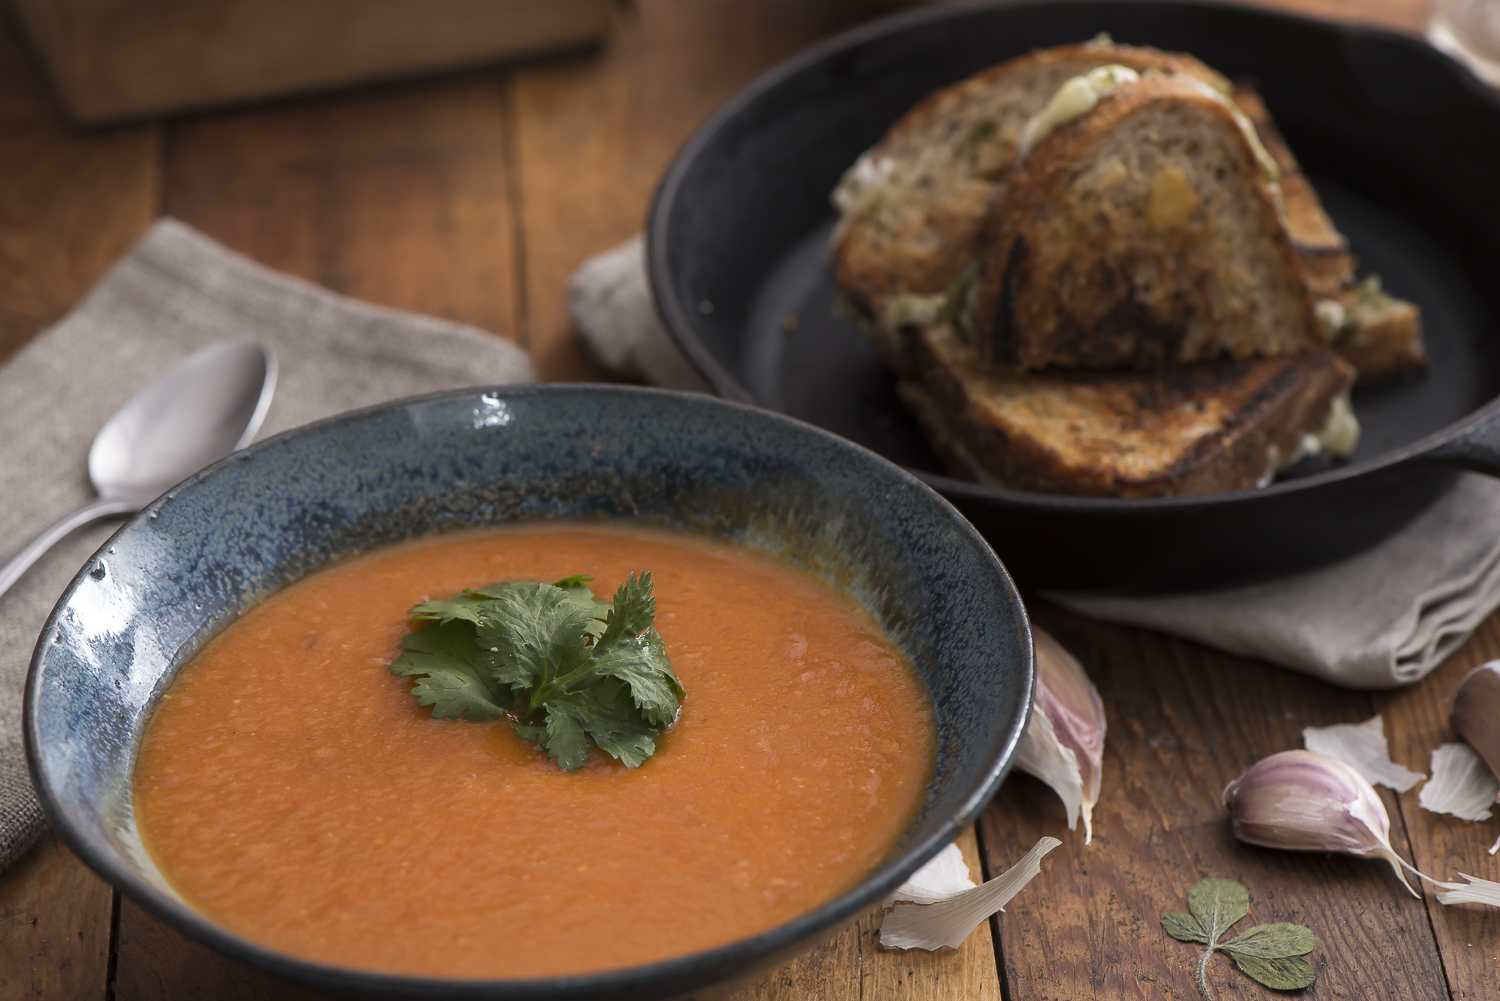 FAT-Tomato-Soup-and-Grilled-Cheese-108.jpg